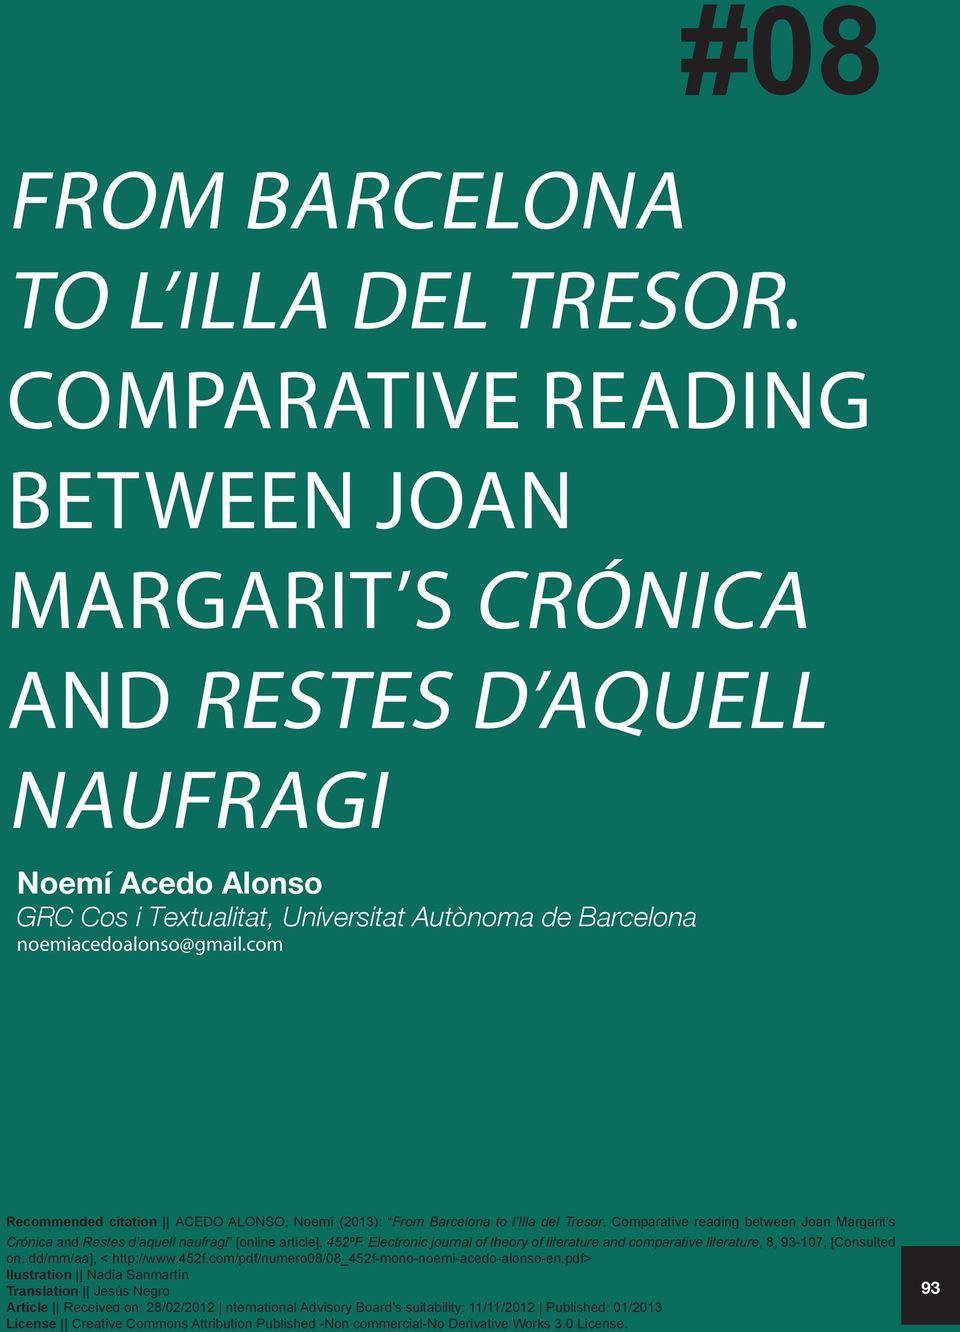 com Recommended citation ACEDO ALONSO, Noemí (2013): From Barcelona to l Illa del Tresor. Comparative reading between Joan Margarit s Crónica and Restes d aquell naufragi [online article], 452ºF.